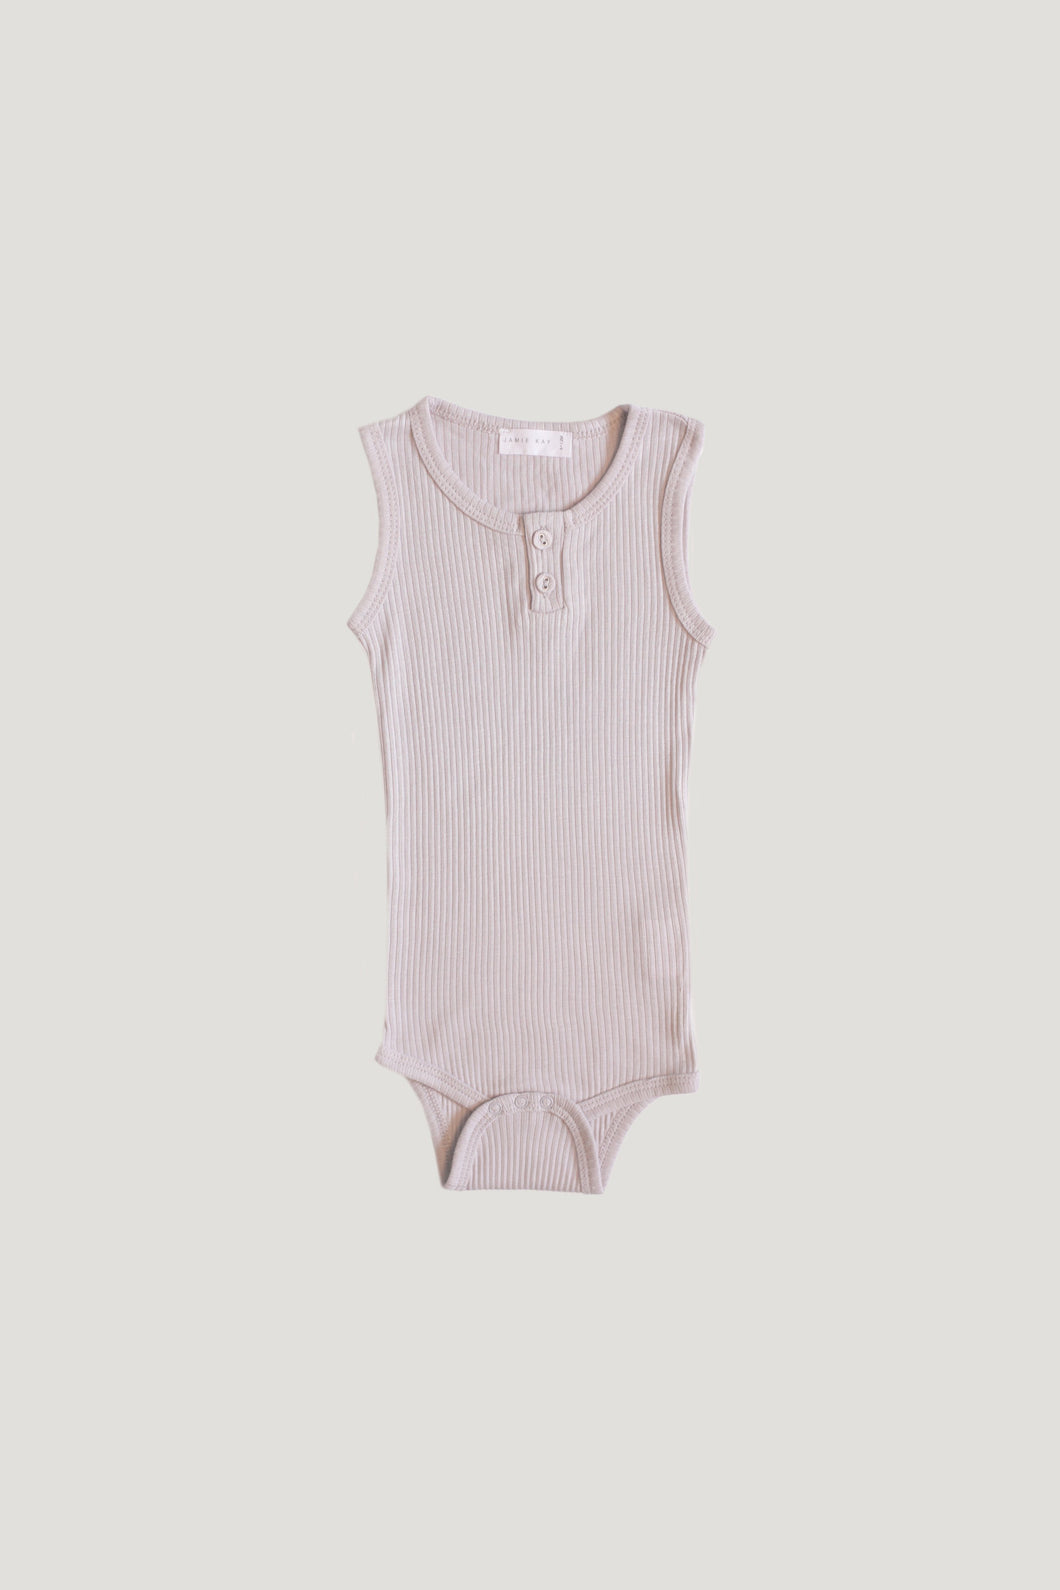 Jamie Kay Cotton Modal Essentials Singlet Bodysuit - Iris